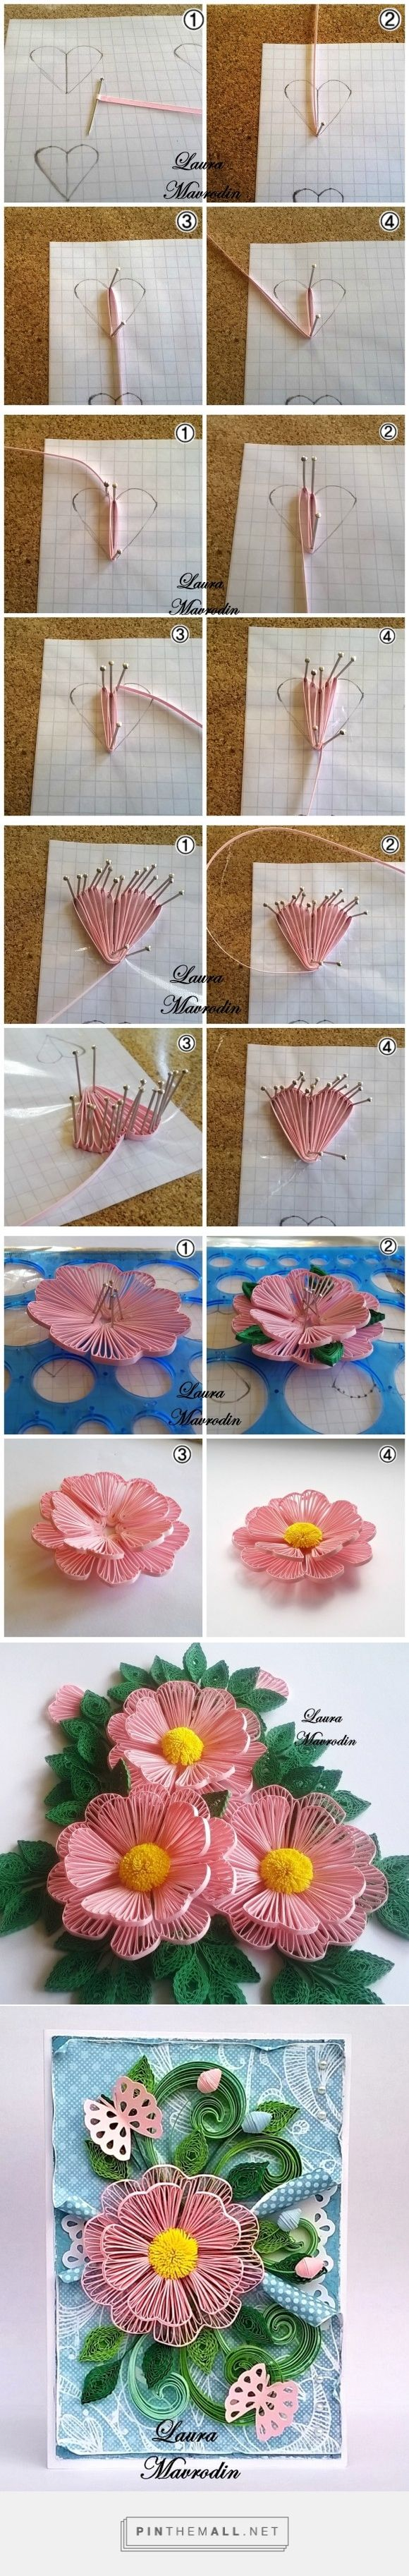 Technika quilling: Husking – kurs na kwiaty « Blog sklepu internetowego Na-Strychu.pl… – a grouped images picture – Pin Them All